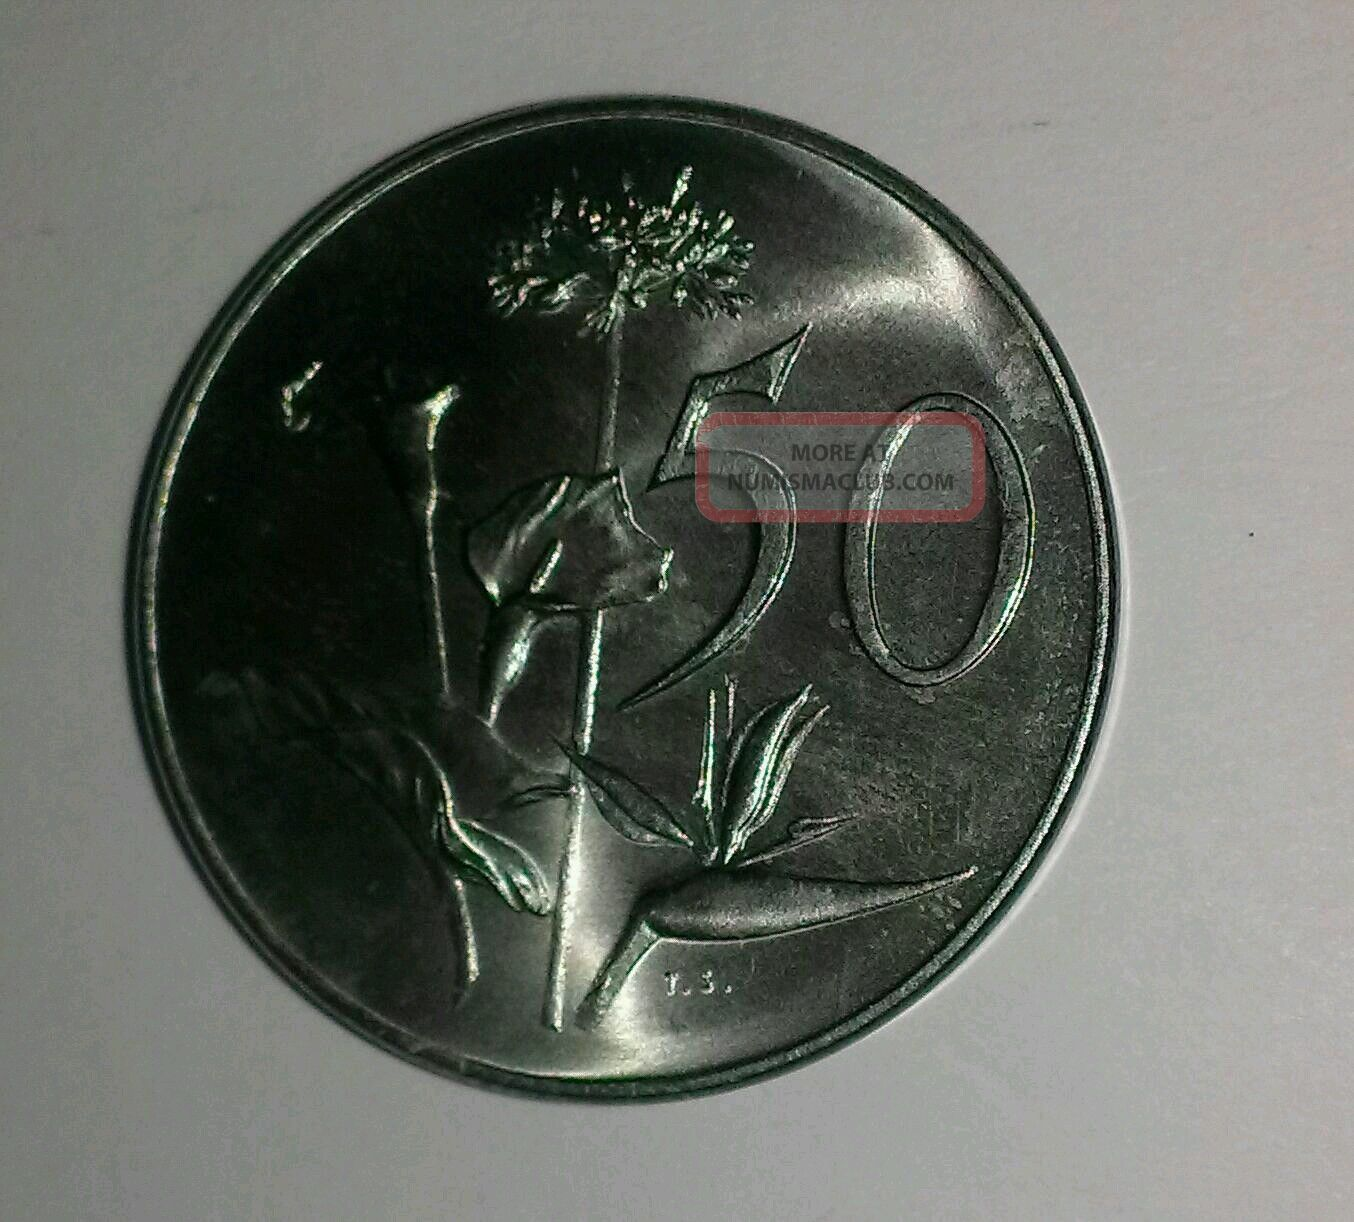 1965 South Africa 50 Cents Nickel Half Dollar Size Coin